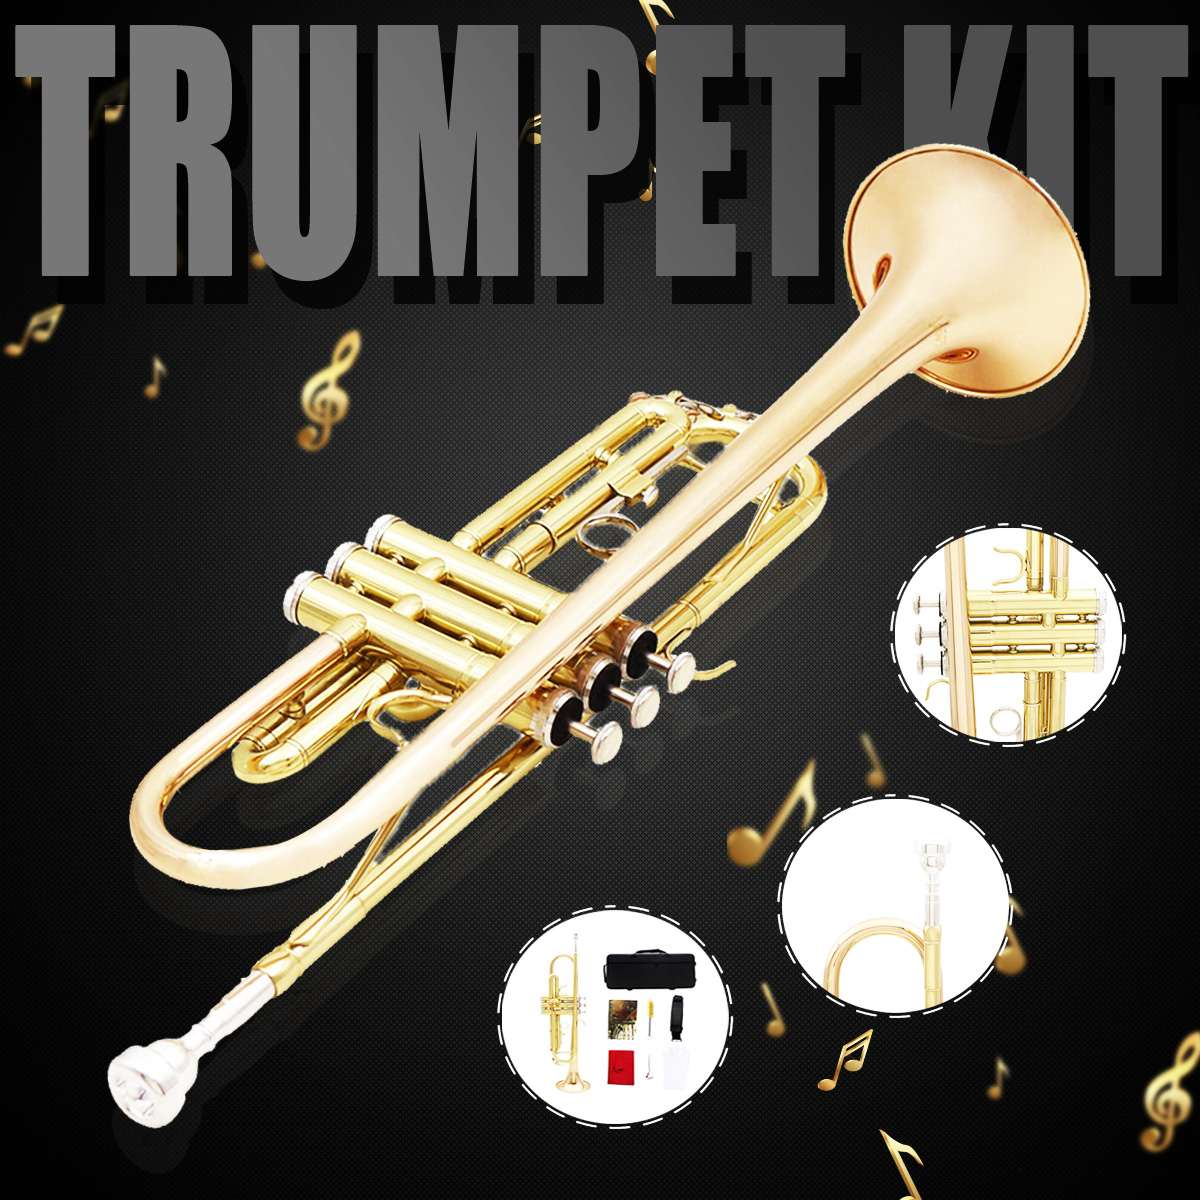 Bach Trumpet  Plated GOLD KEY LT180S-72 Flat Bb Professional Trumpet Bell Top Musical Instruments Brass